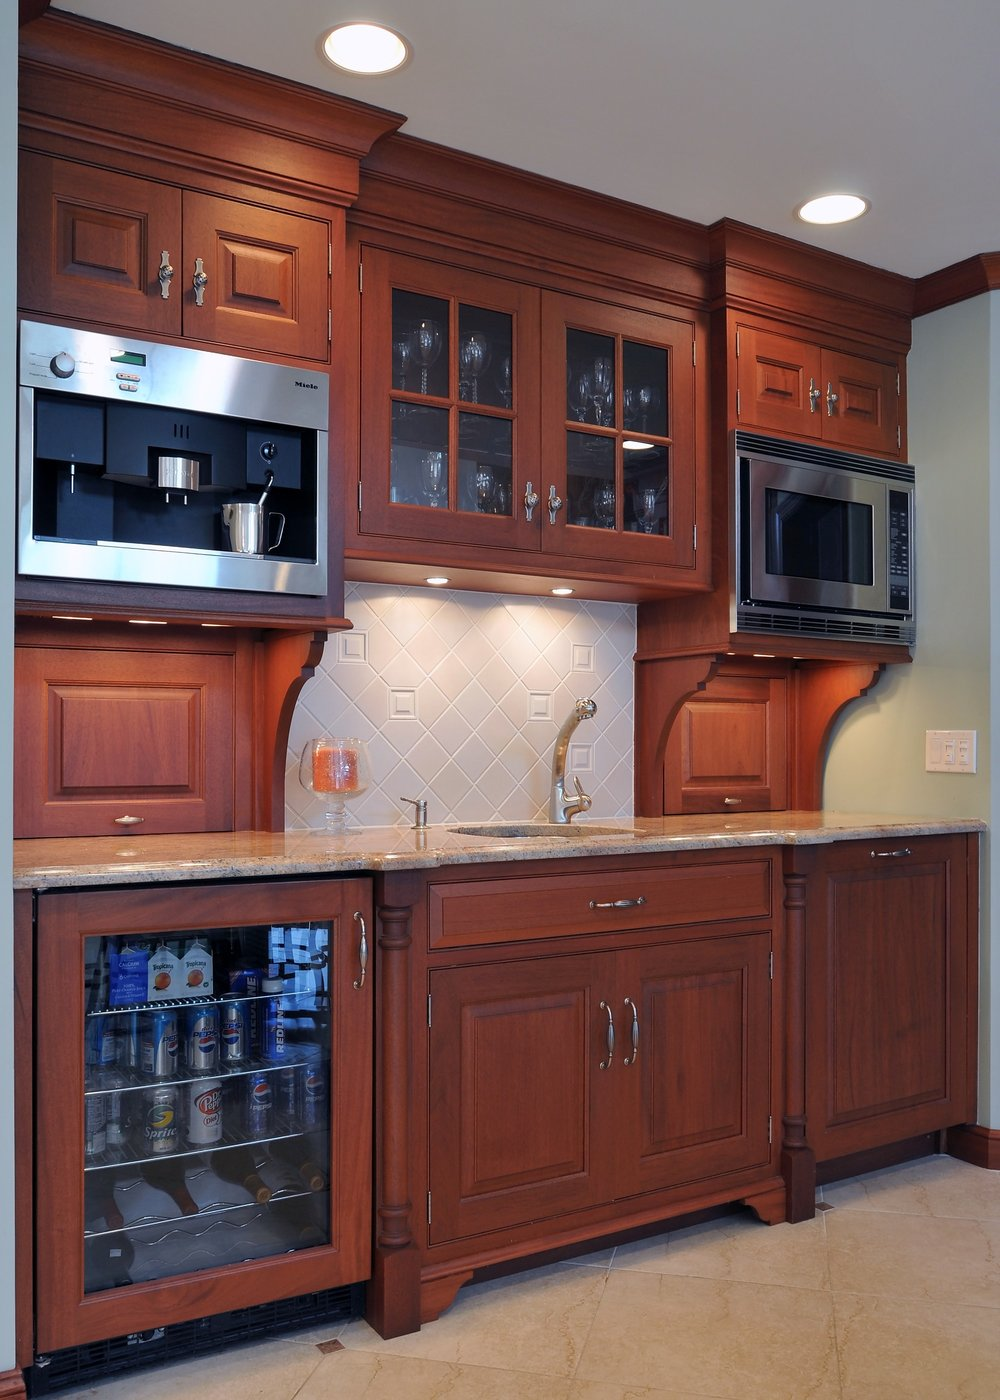 Traditional style kitchen with plenty of storage and drawers